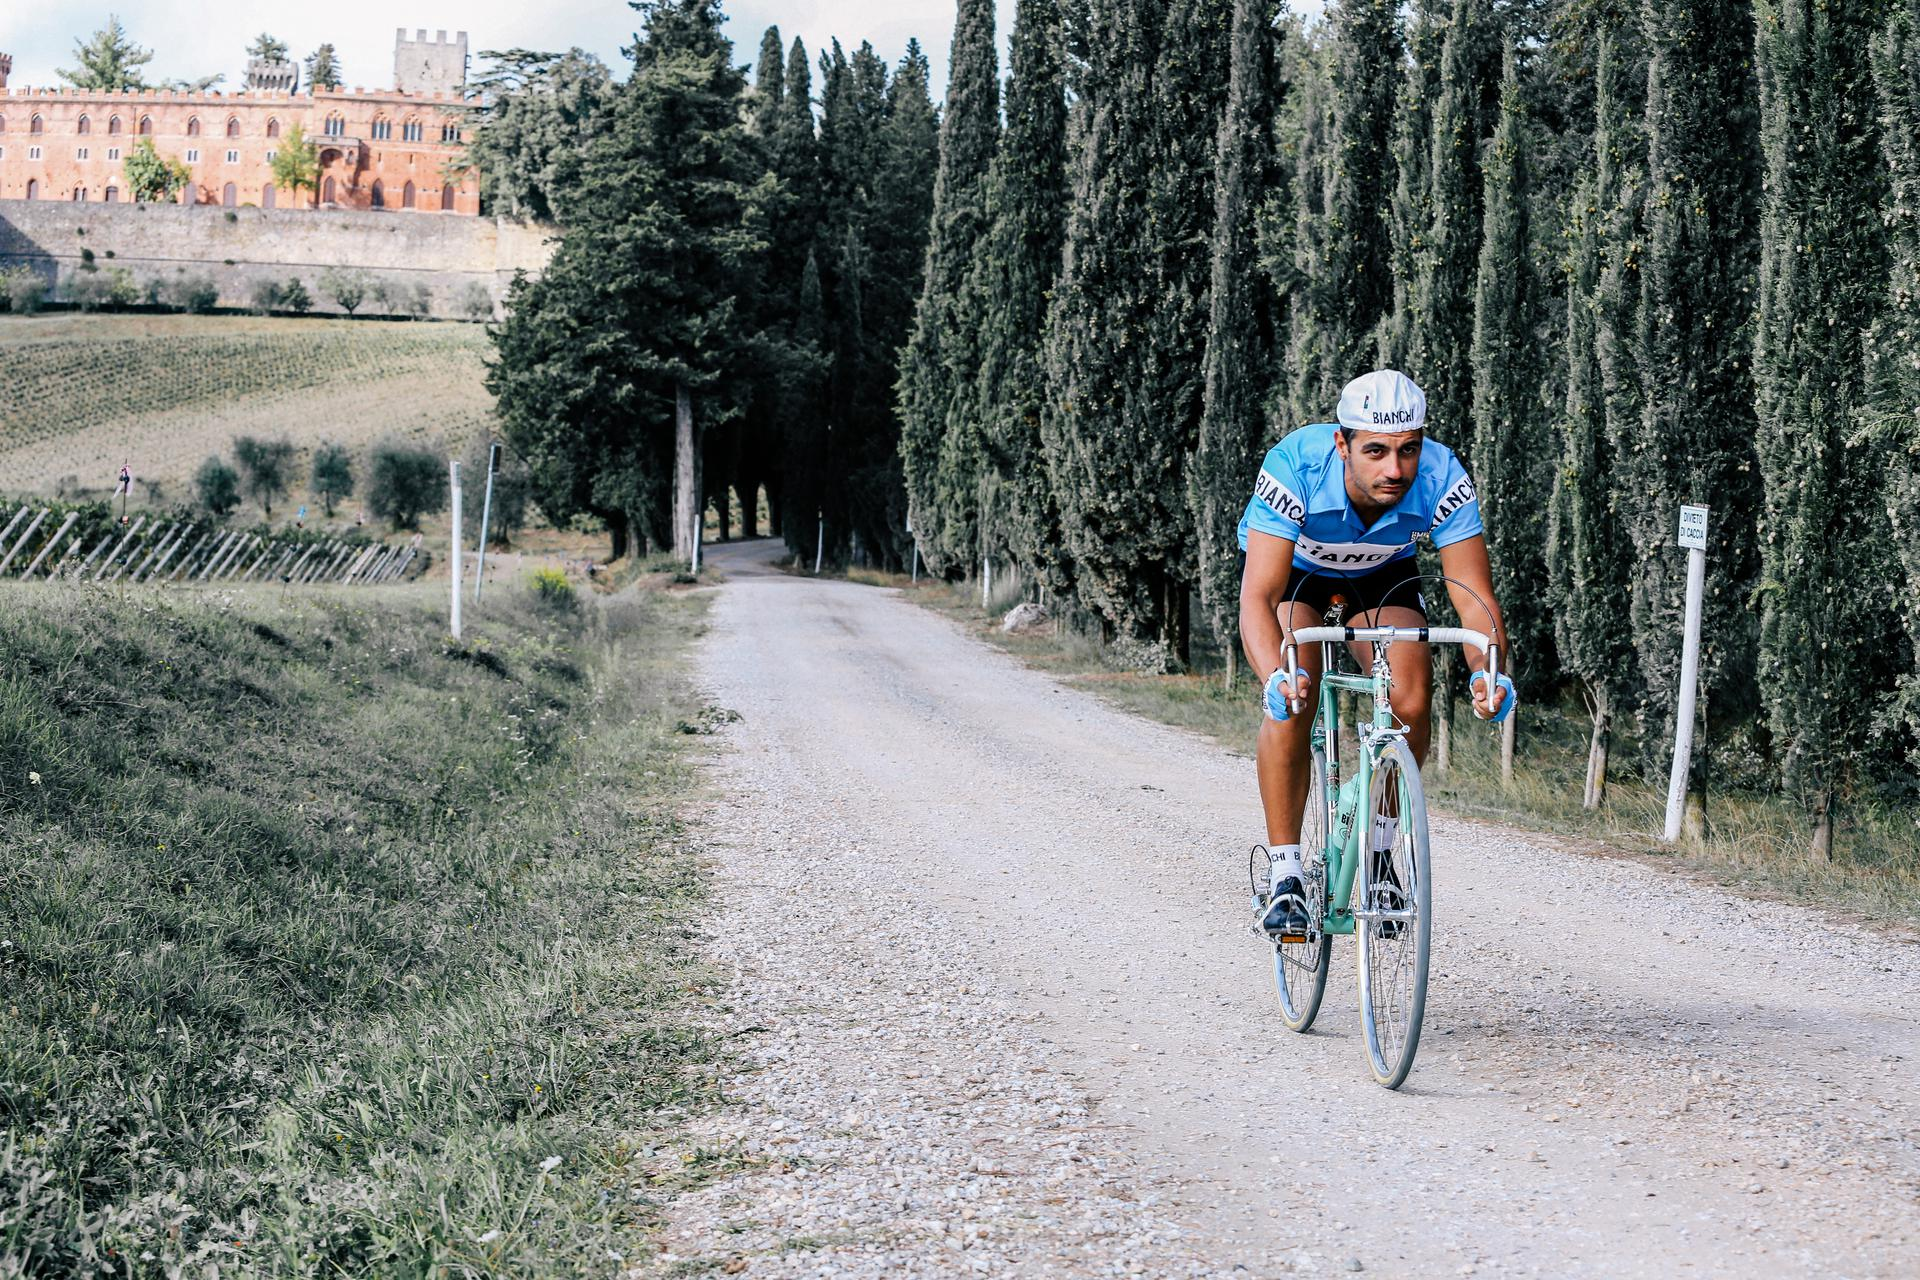 BIANCHI AT L'EROICA IS MORE THAN VINTAGE